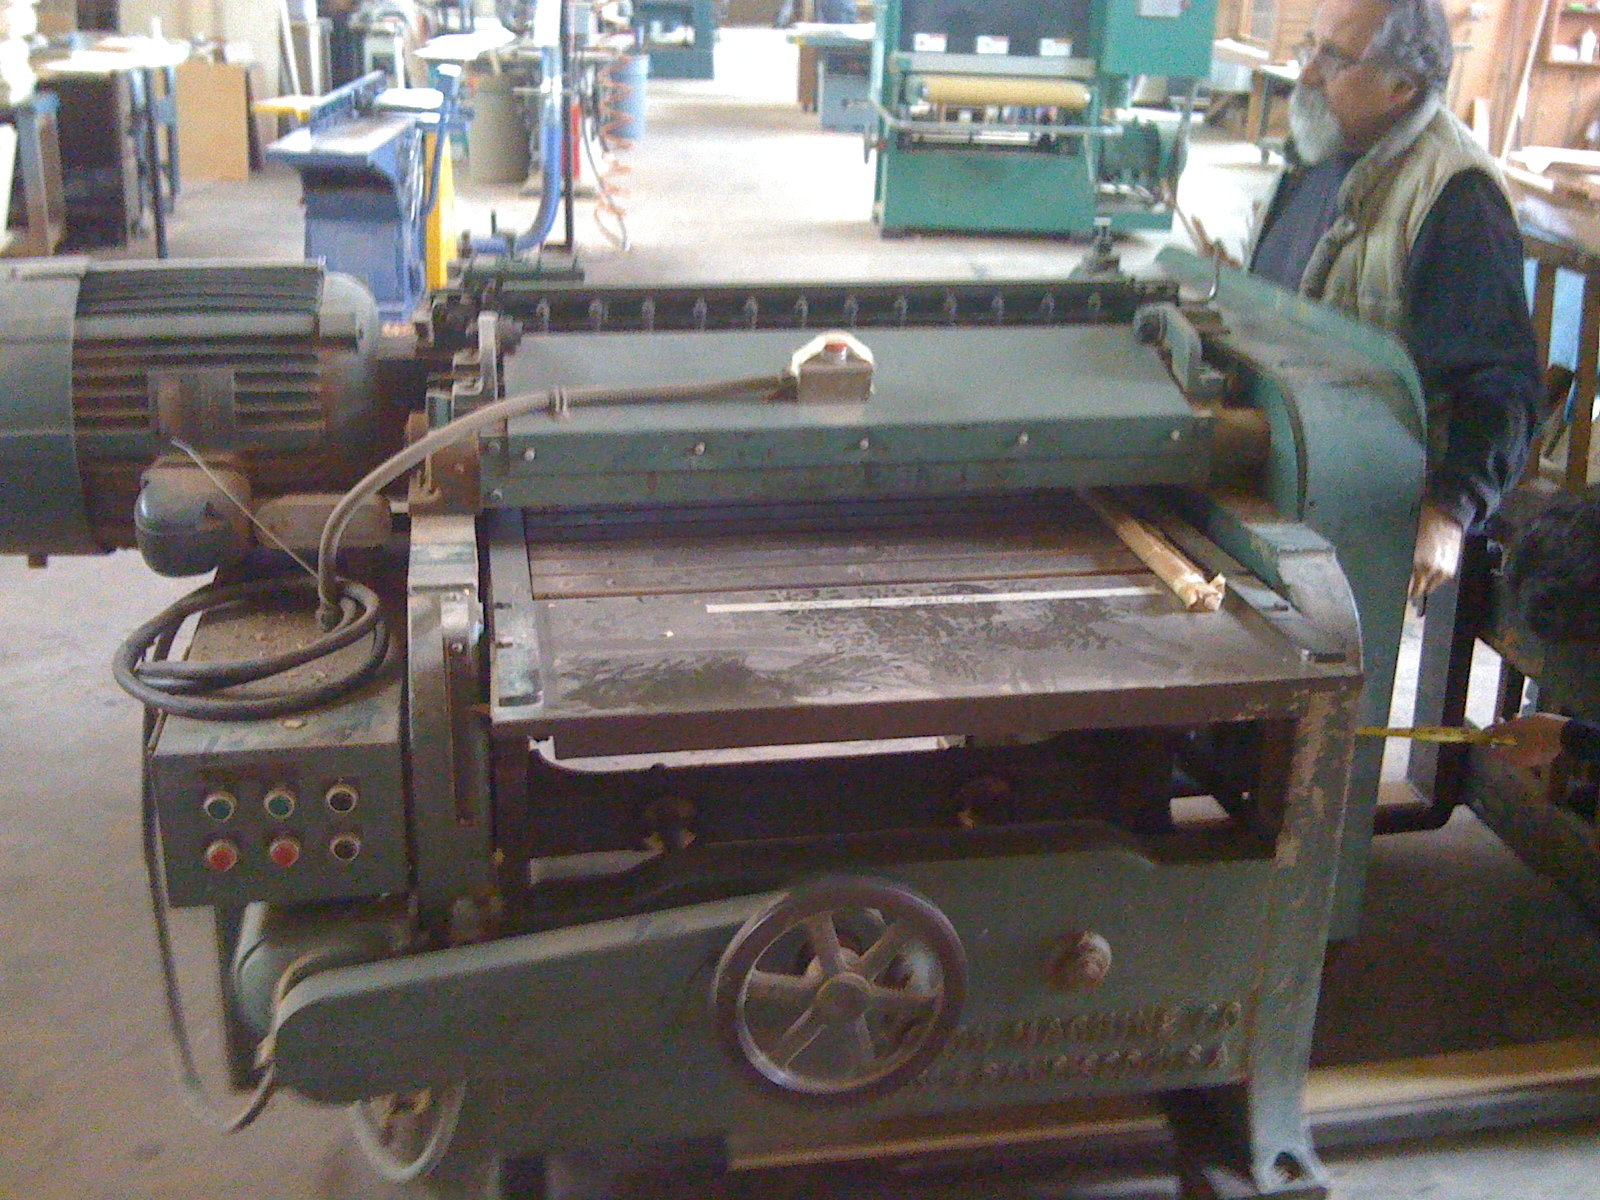 Best woodworking plans 2015 old woodworking machines for for Old blueprints for sale